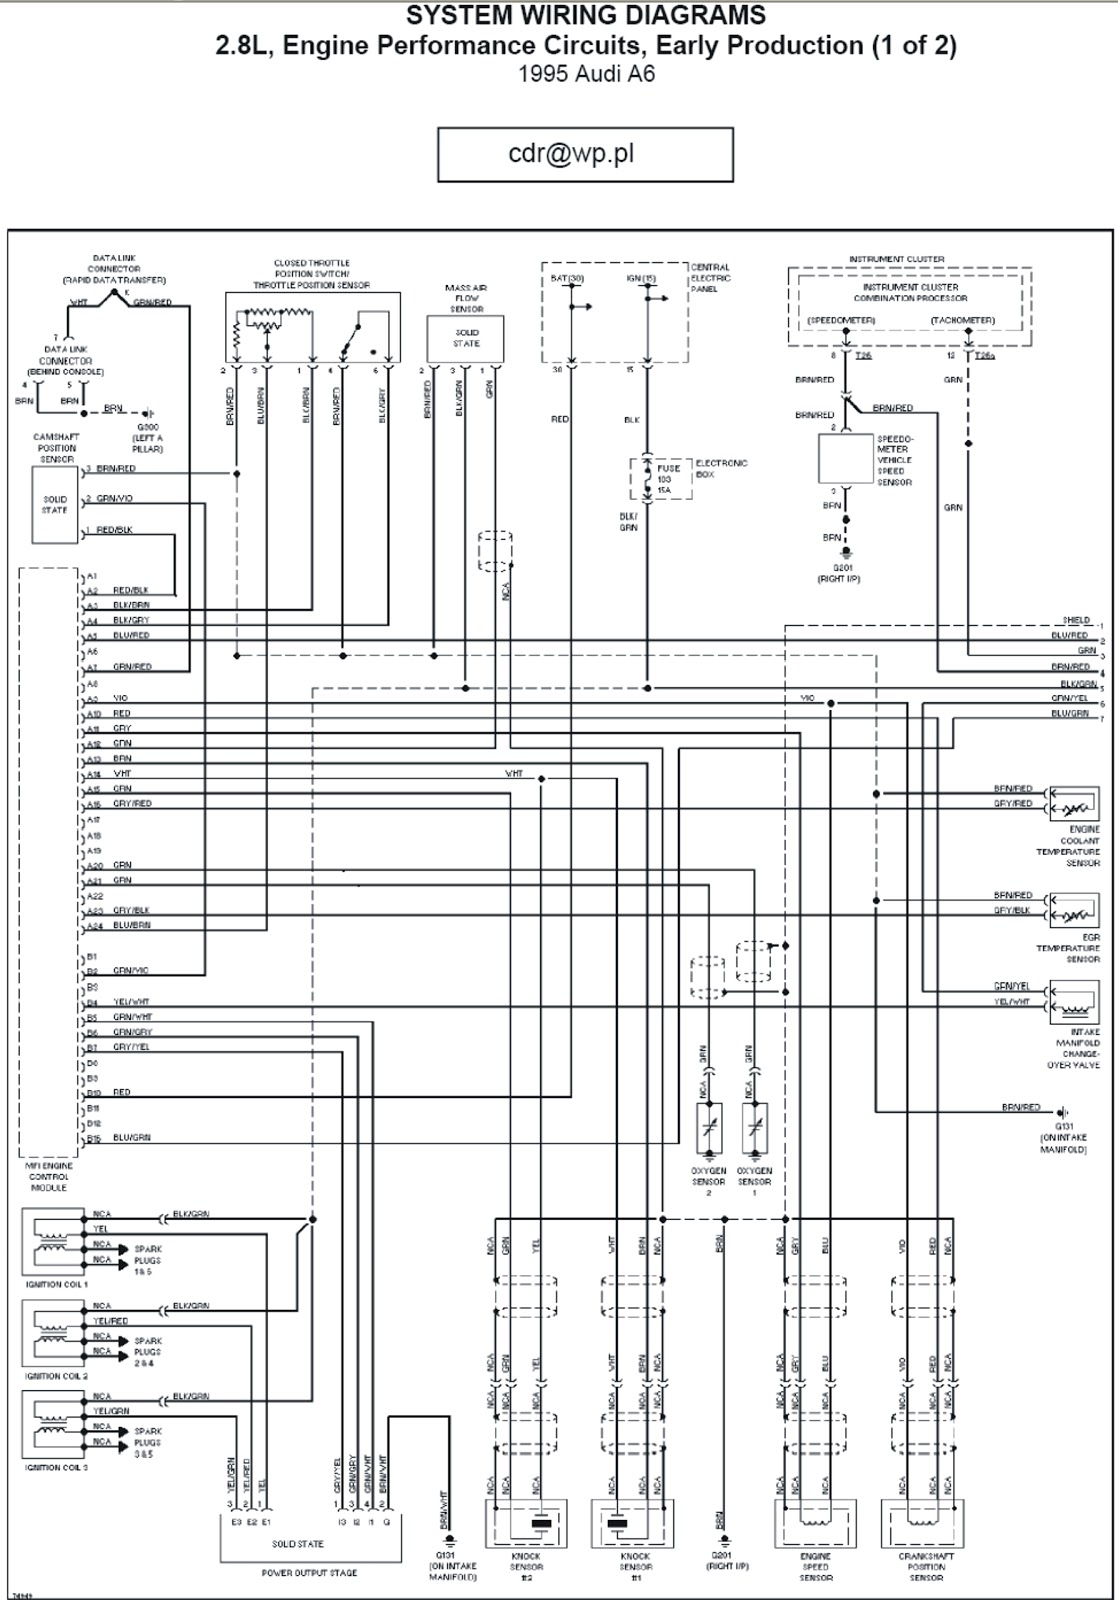 Audi Wiring Schematics - X 18 Pocket Bike Wiring Diagram for Wiring Diagram  SchematicsWiring Diagram Schematics